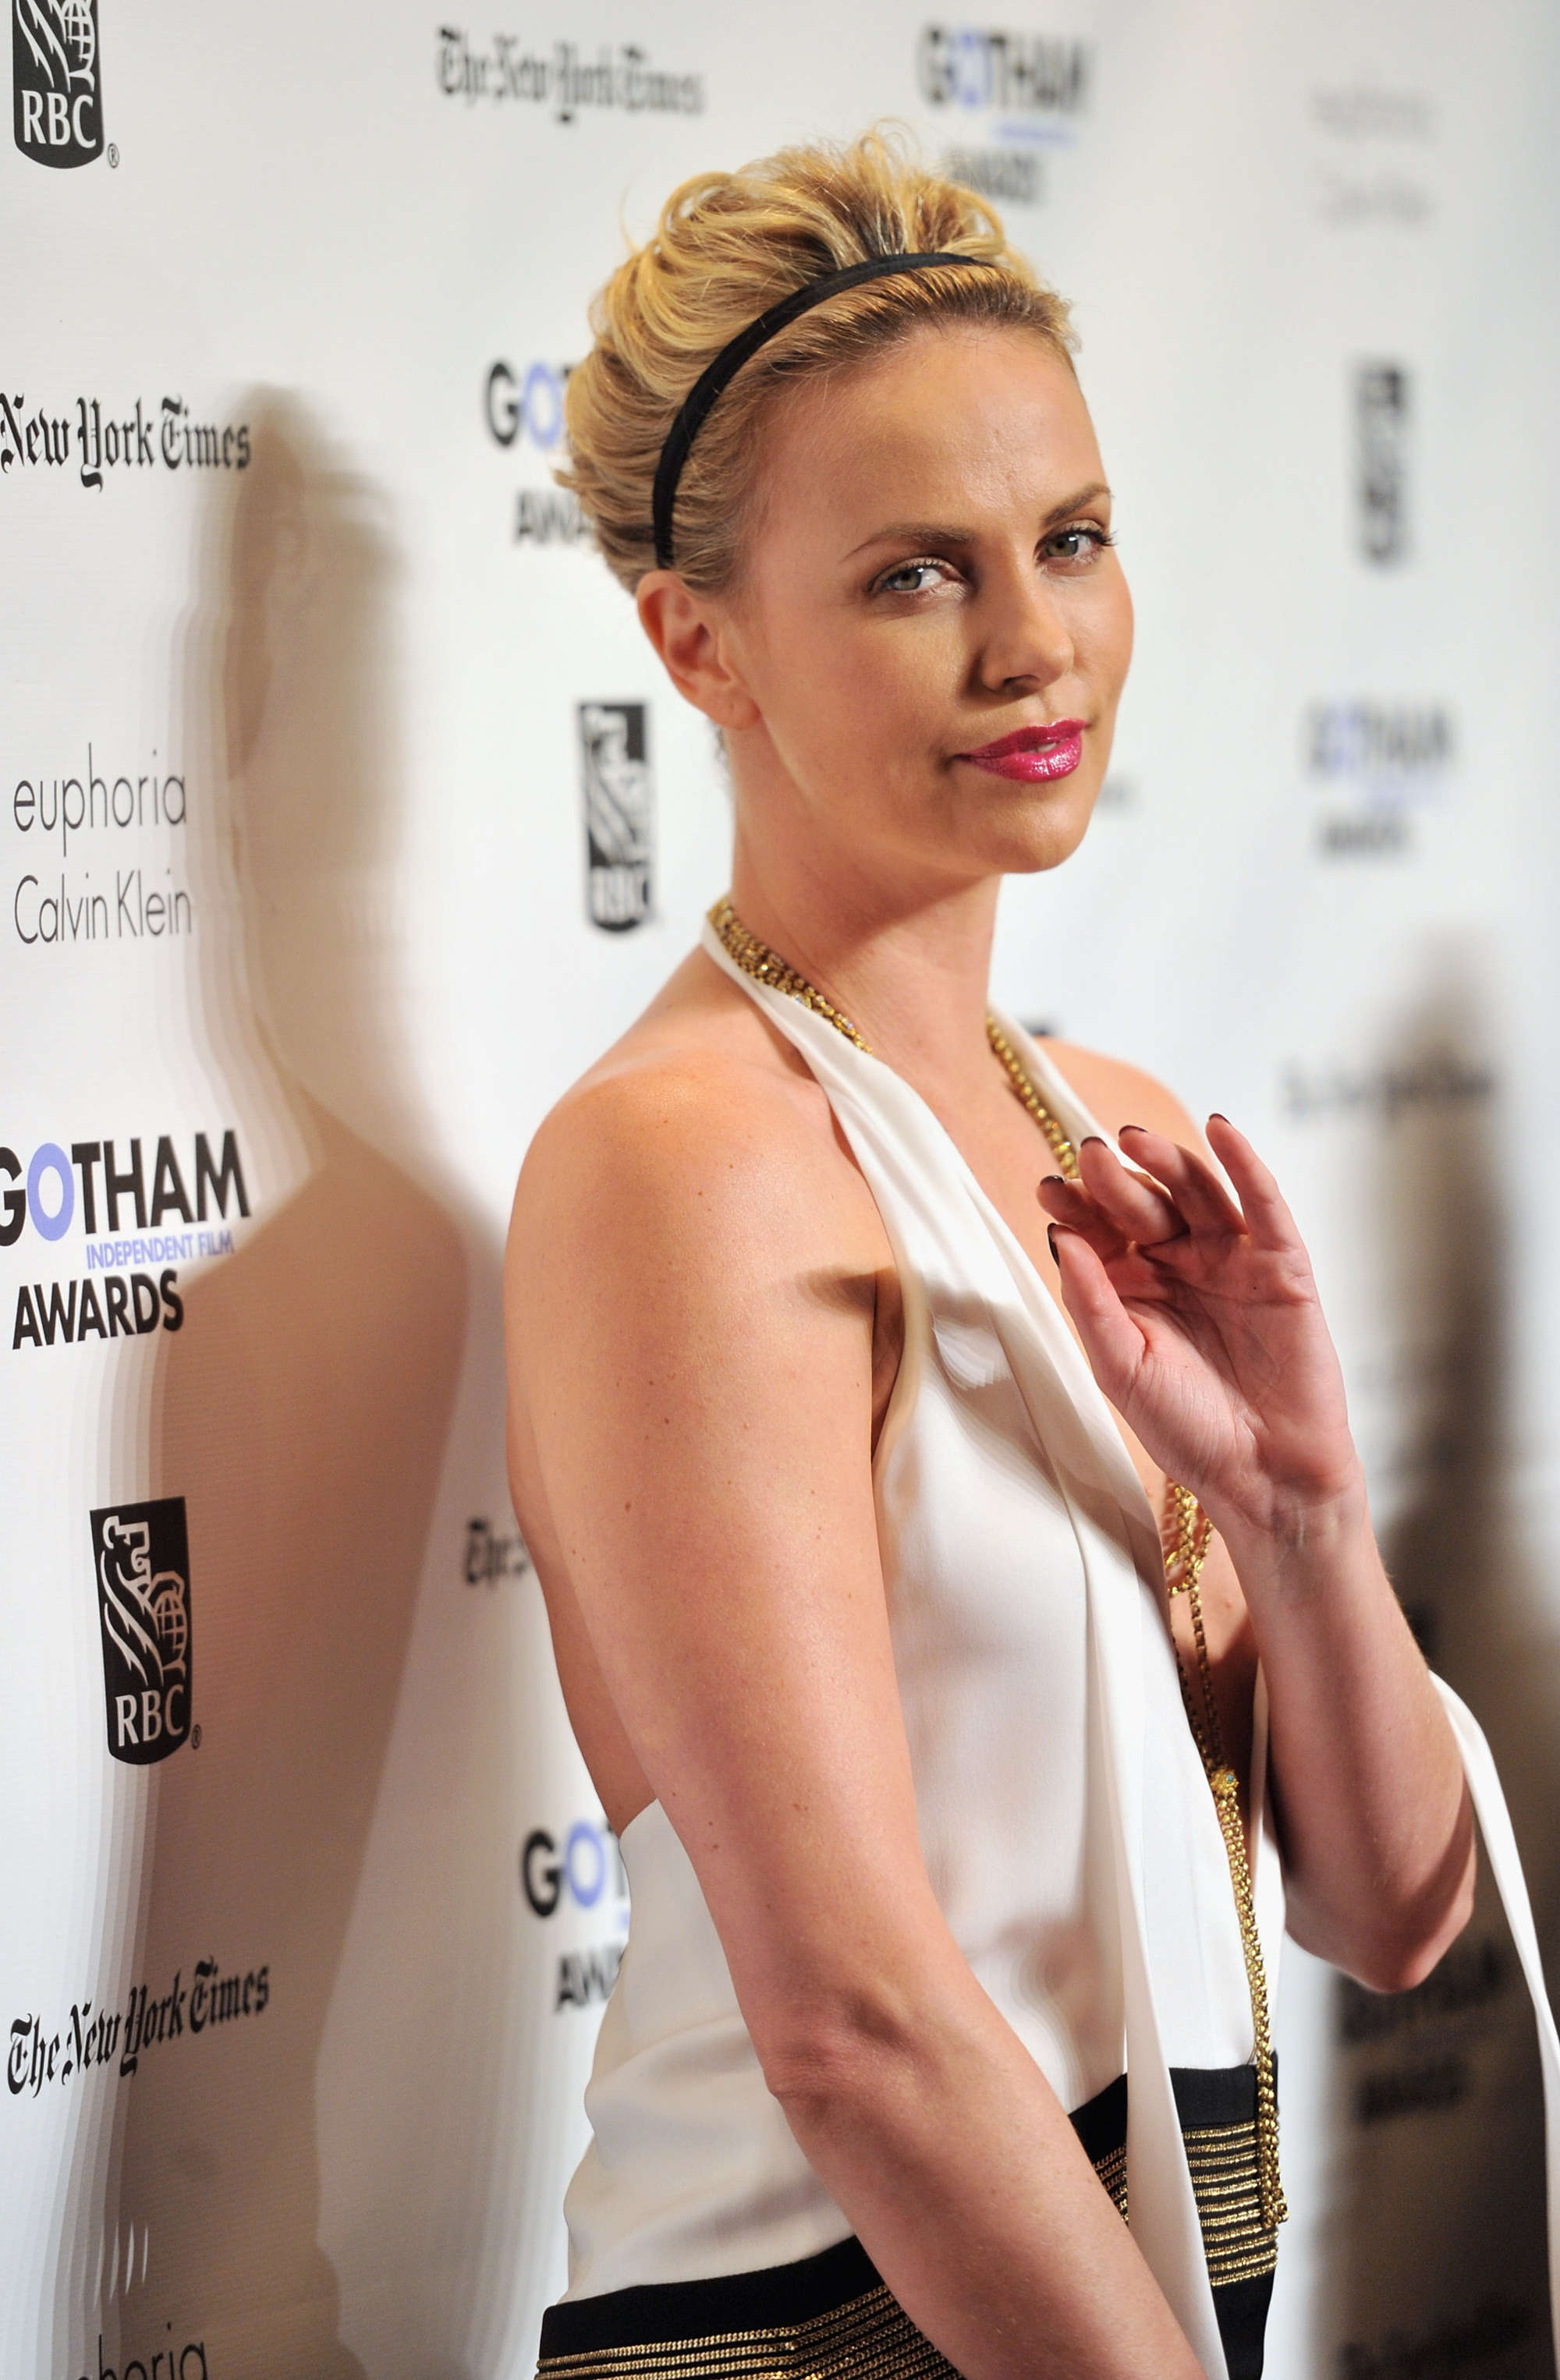 Charlize Theron Cleavage At Gotham Independent Film